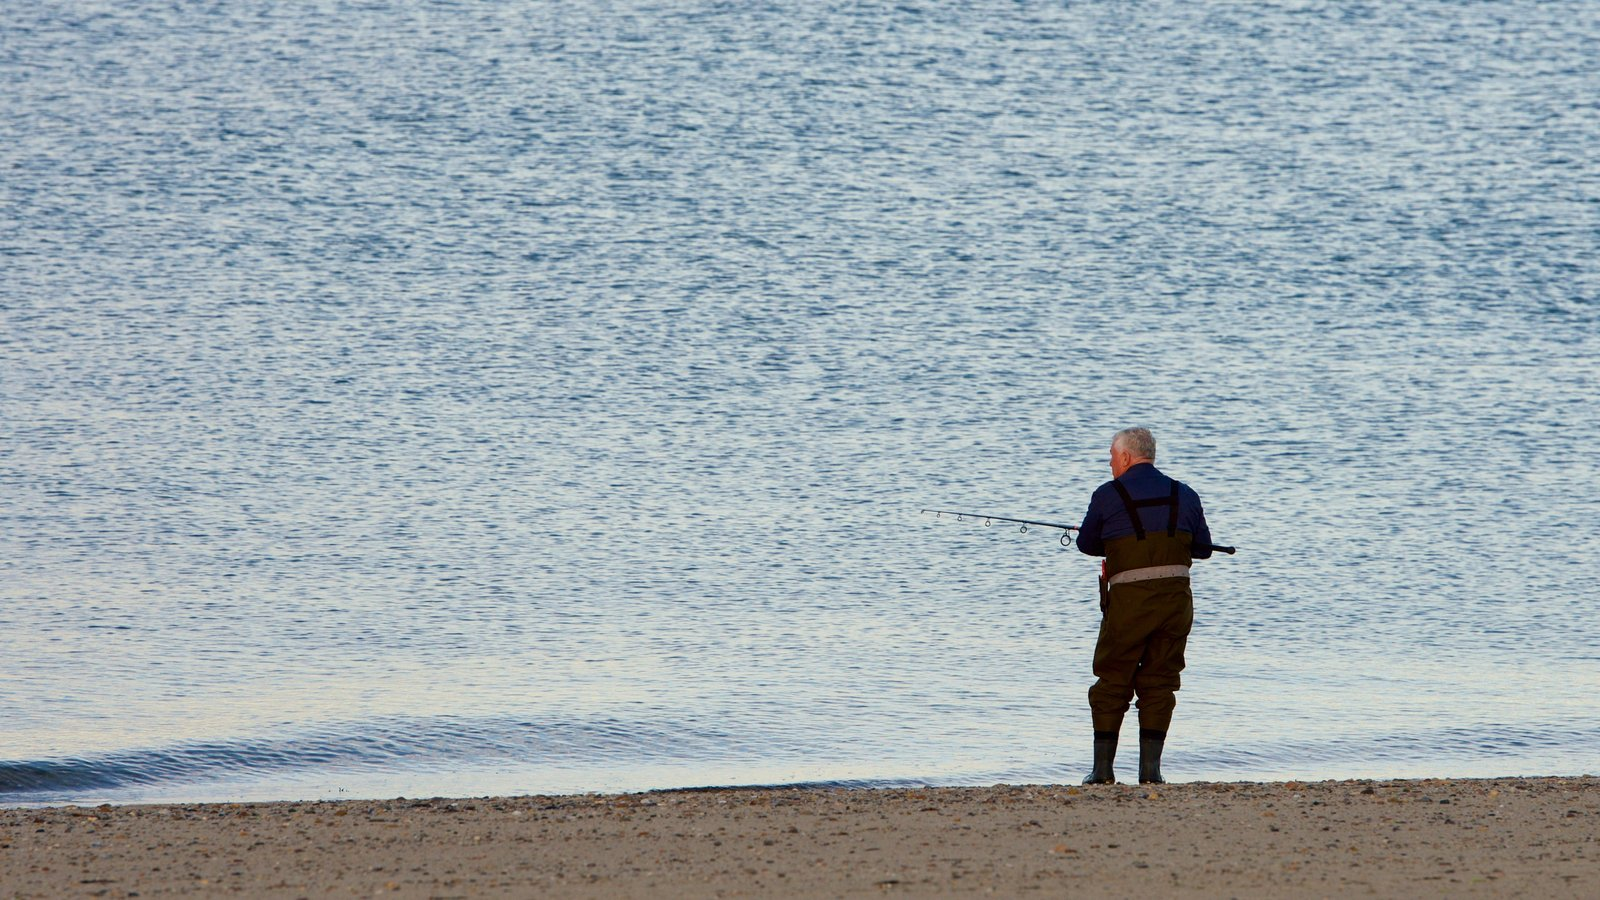 Herring Cove Beach which includes fishing and a beach as well as an individual male